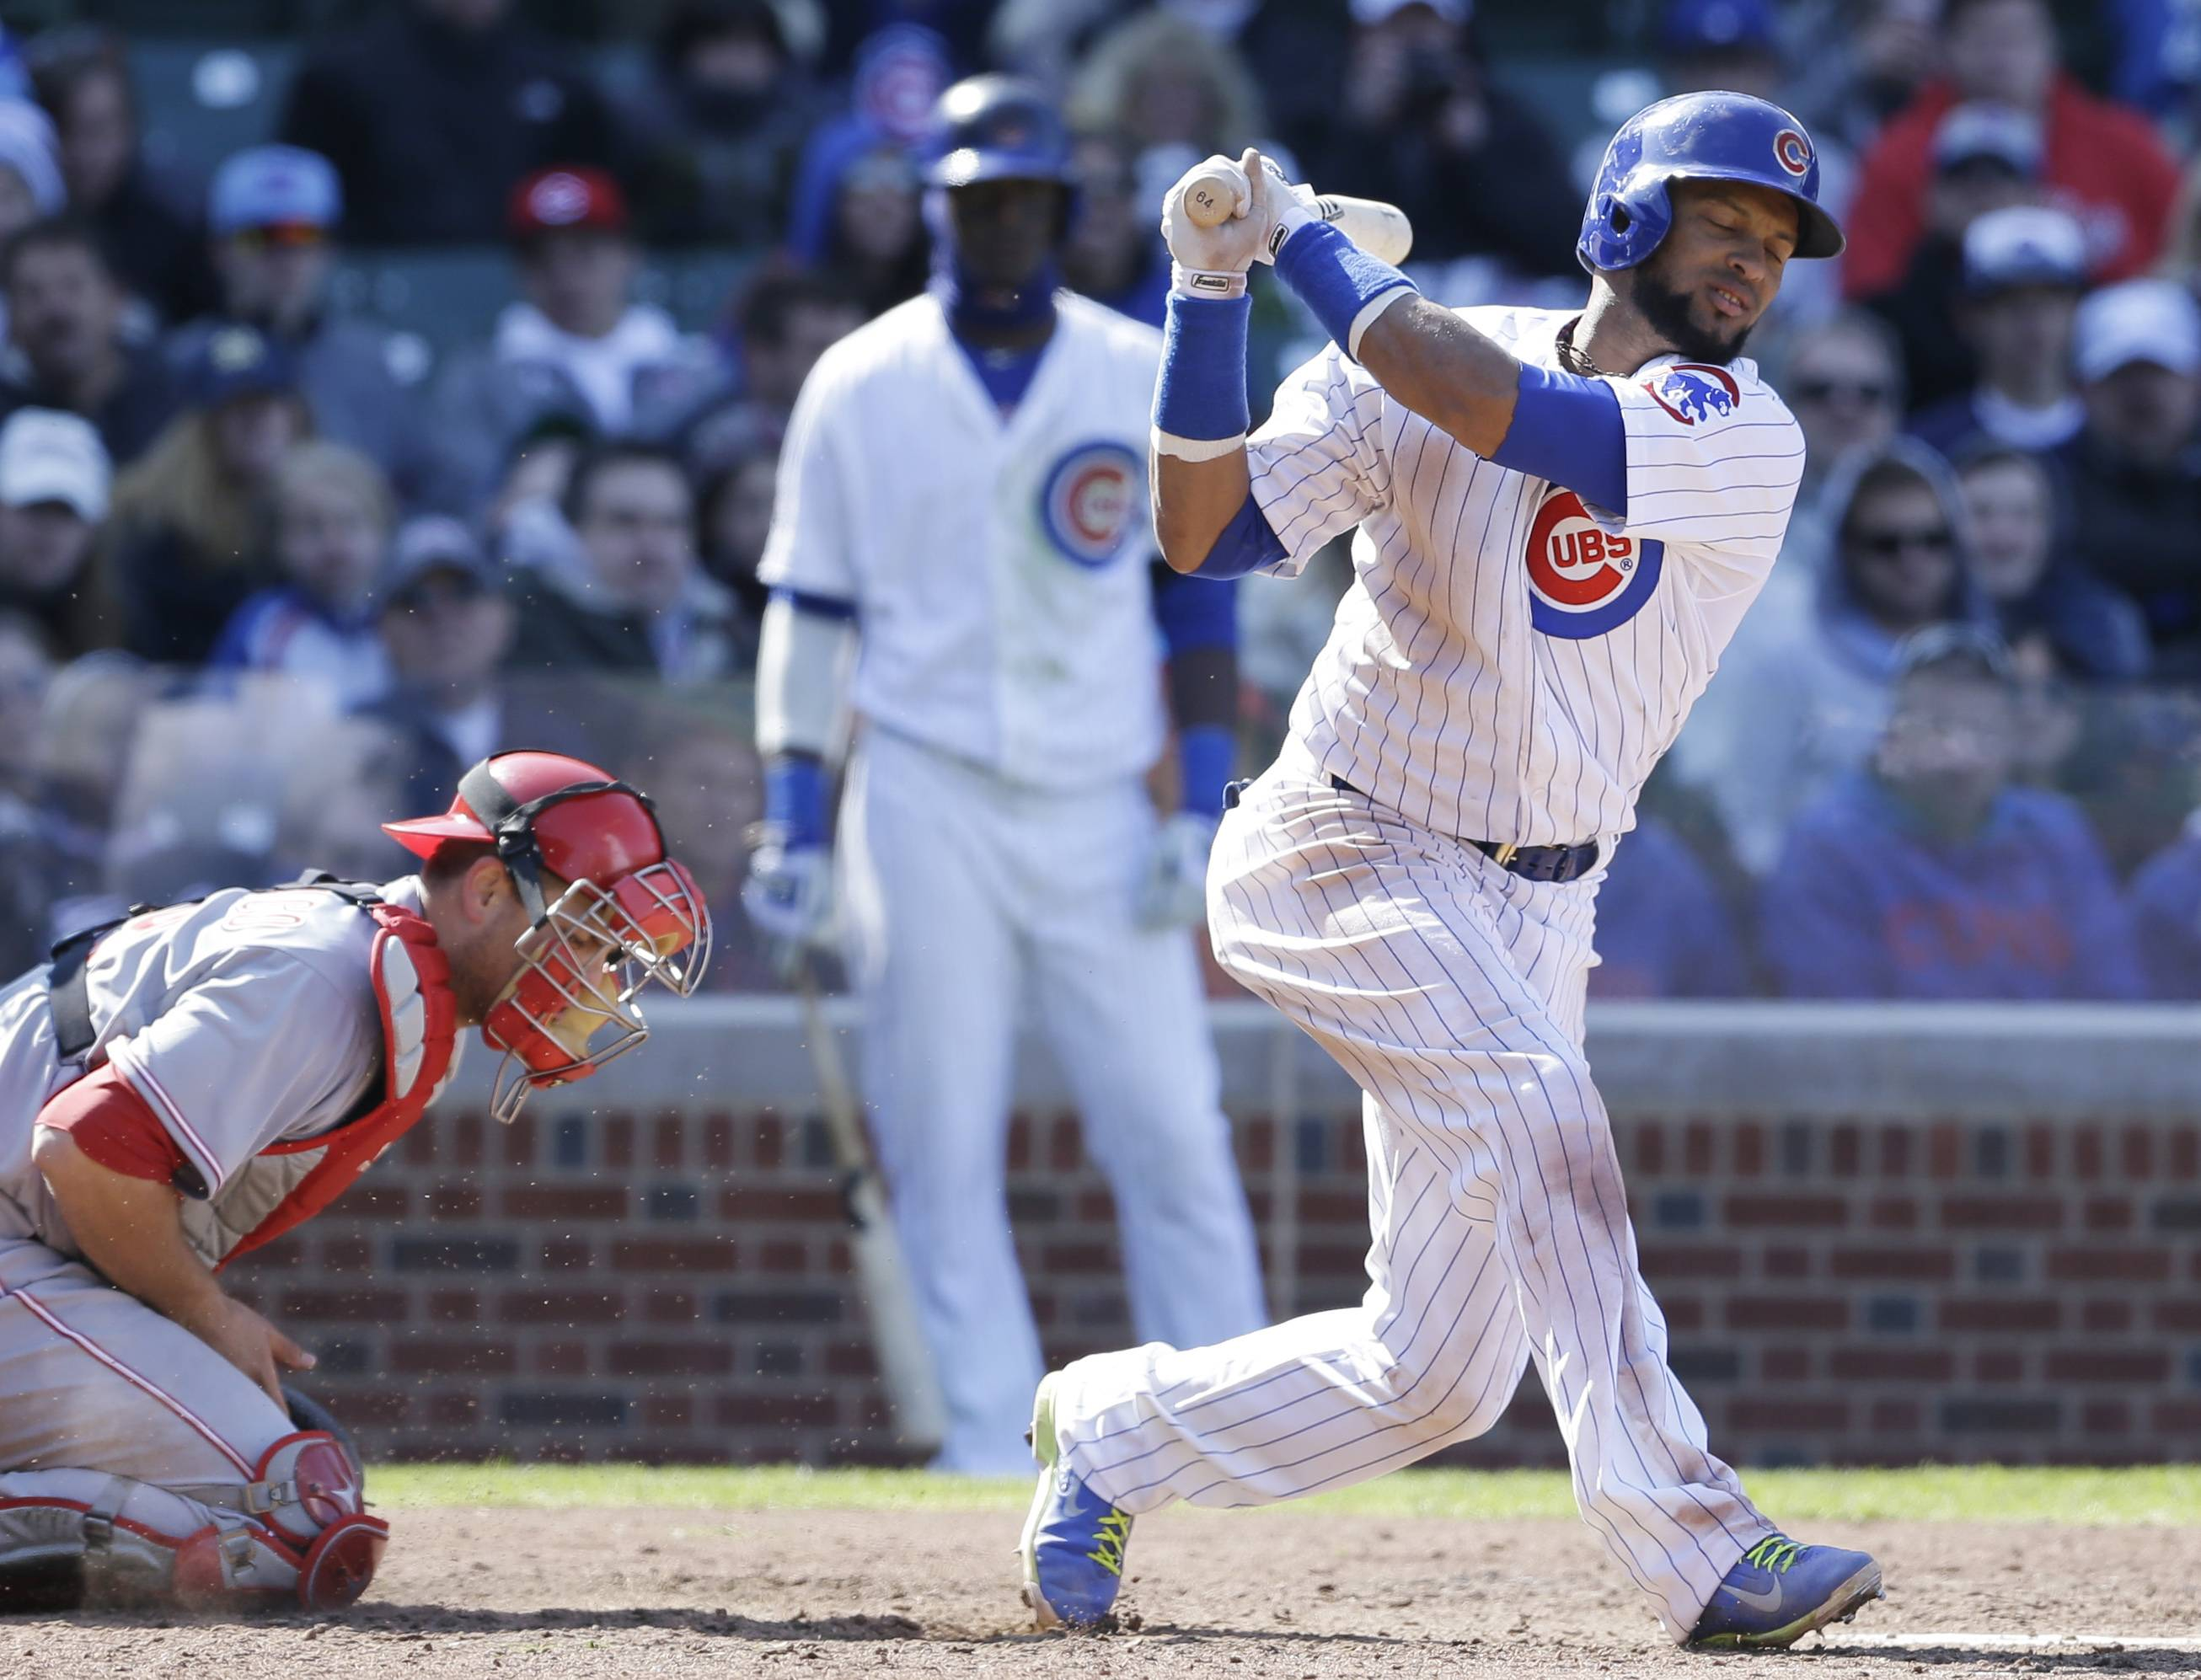 Emilio Bonifacio strikes out swinging during the seventh inning of the Cubs' 4-1 loss to Cincinnati on Friday at Wrigley Field.